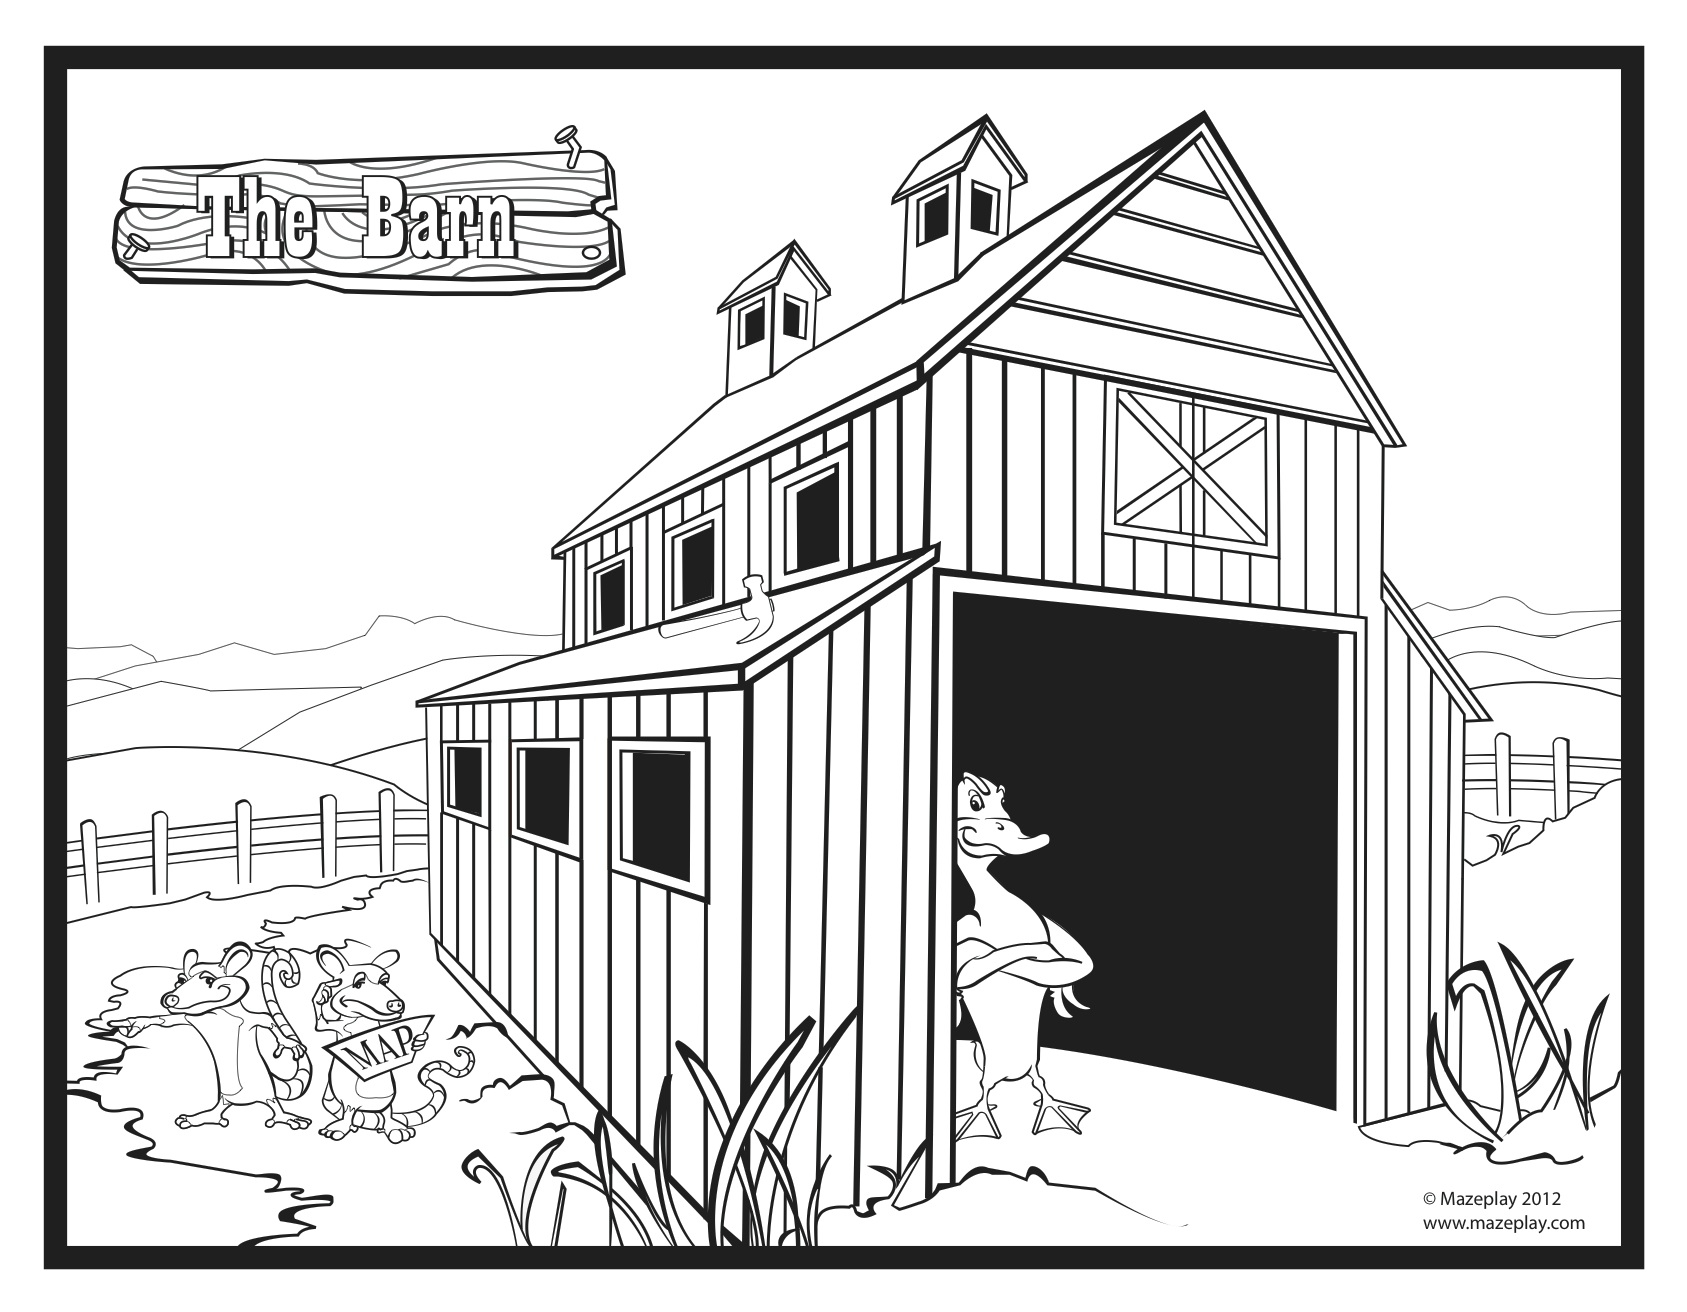 21 Barn Coloring Pages Collections | FREE COLORING PAGES - Part 2